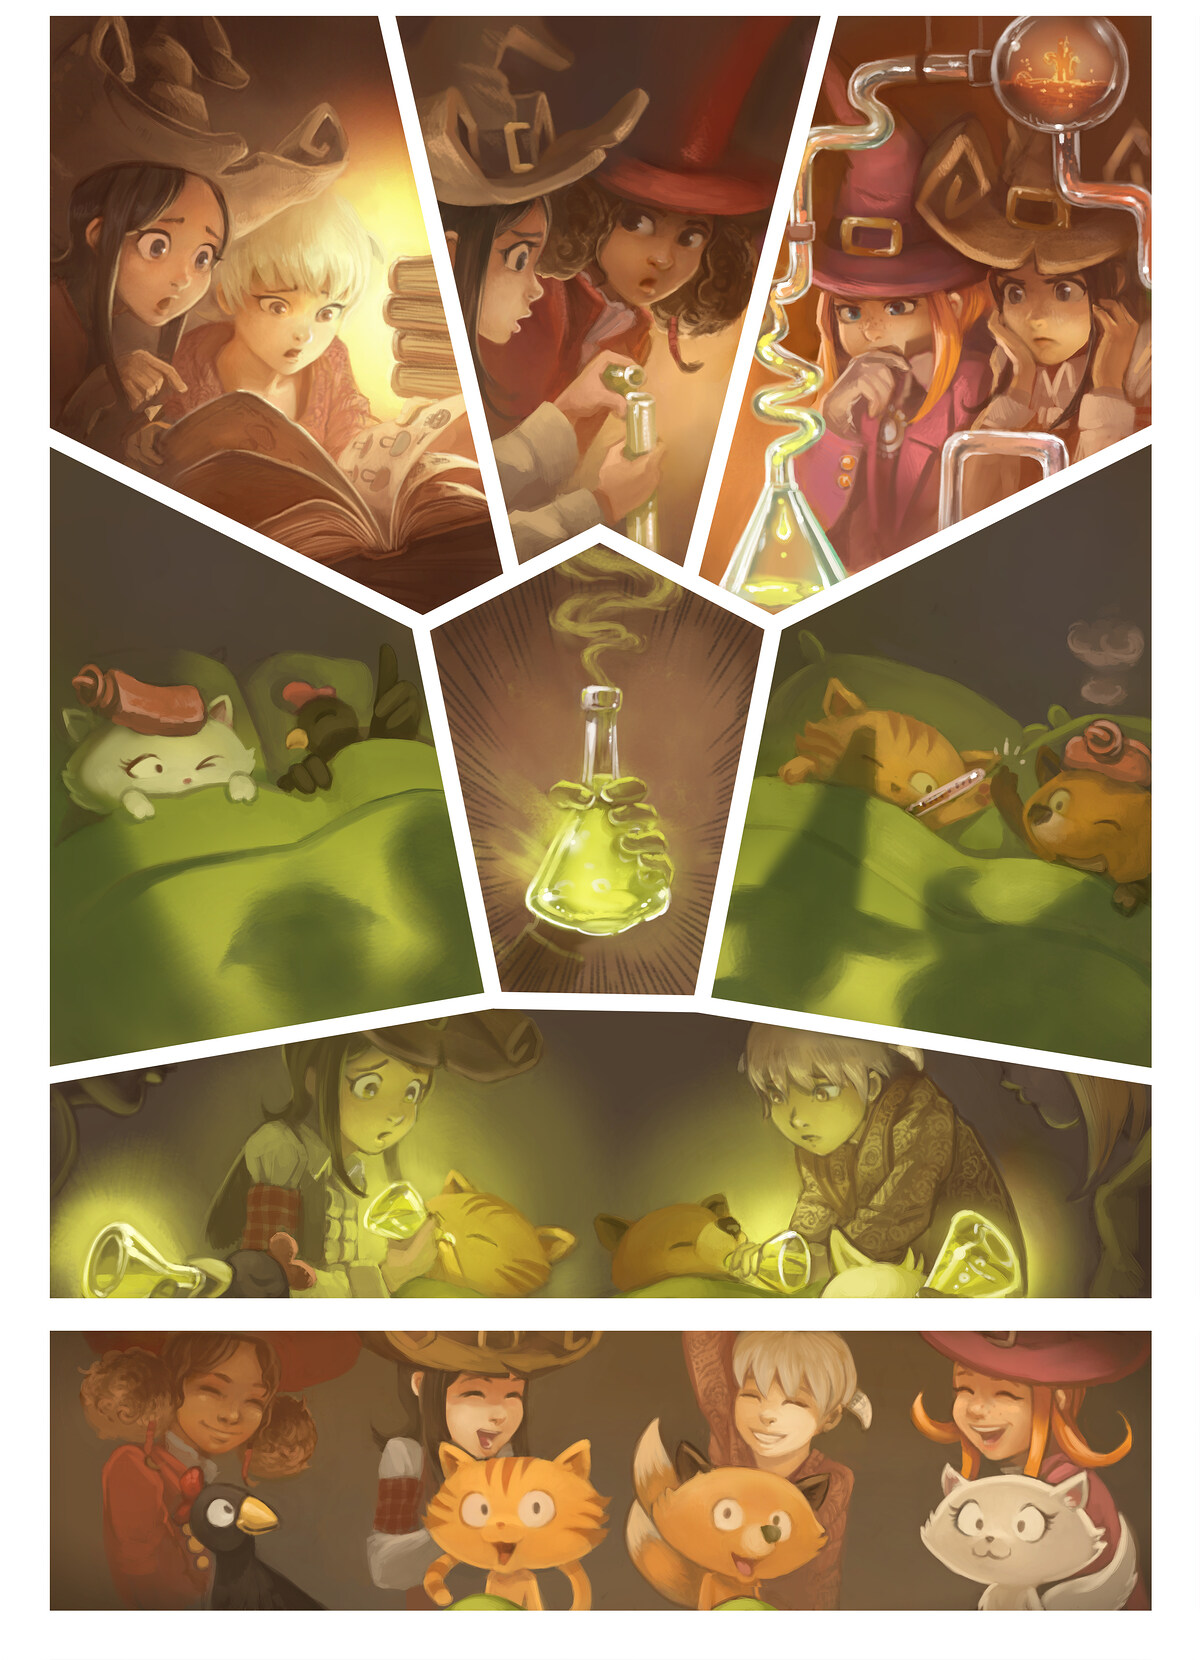 A webcomic page of Pepper&Carrot, Tập 9 [vi], trang 6